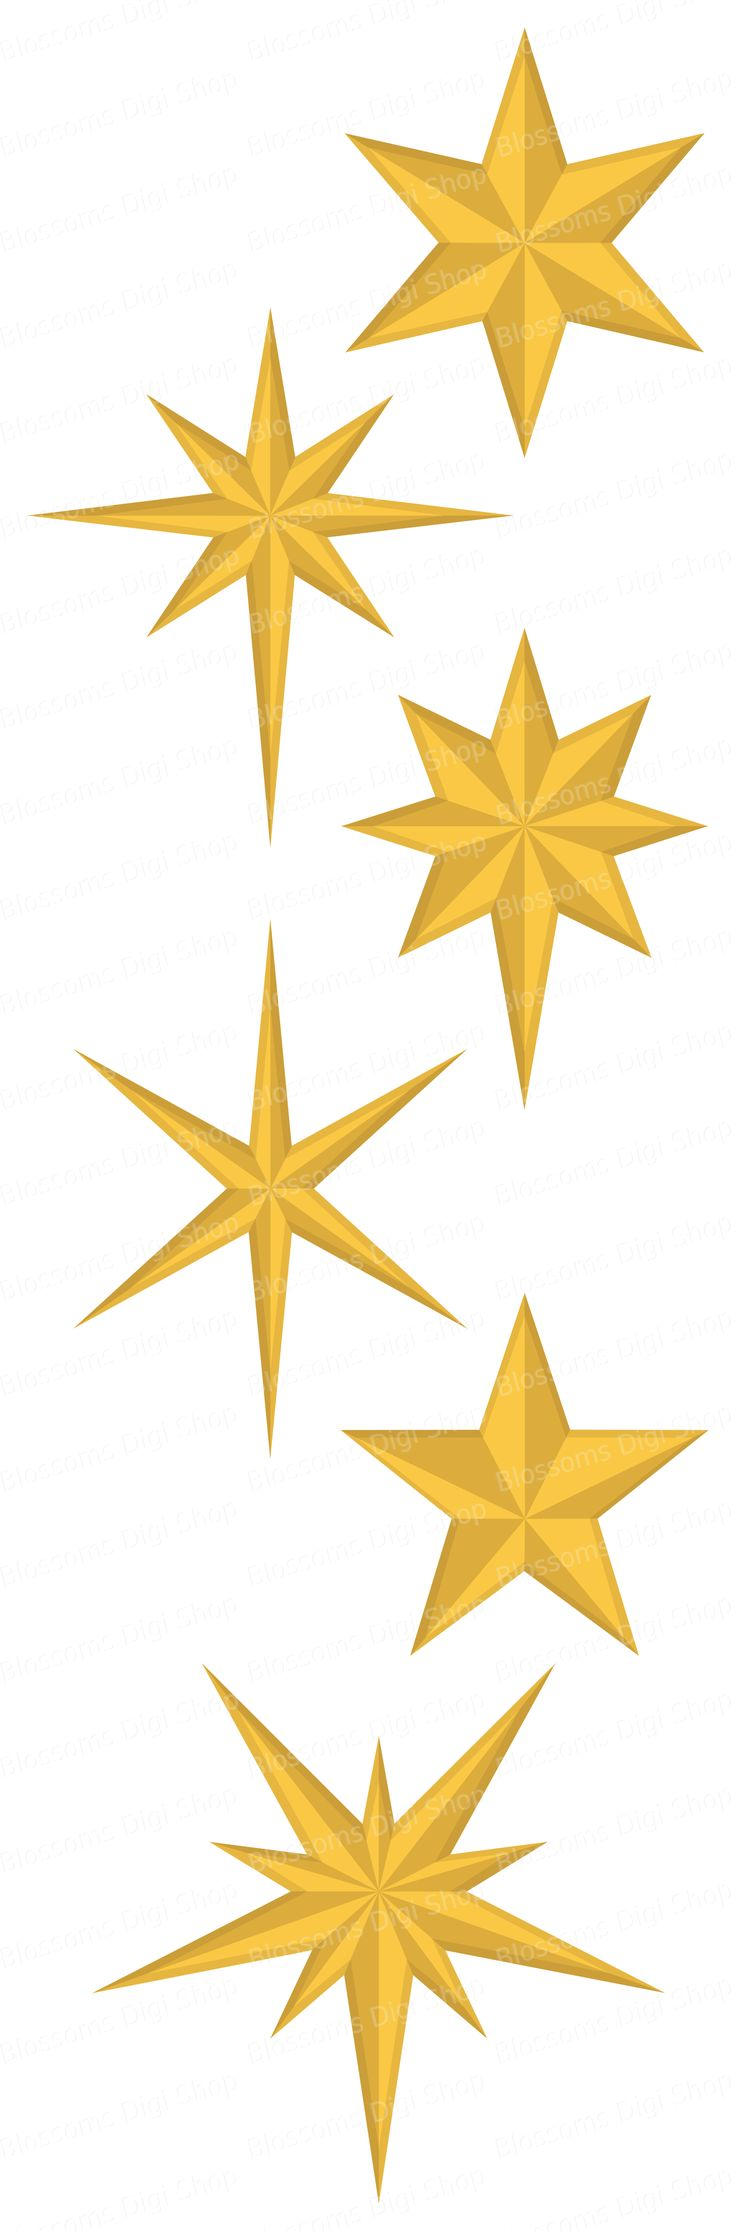 A set of 6 gold christmas stars clipart complete with an EPS file for easy editing.  Available to download at Etsy for personal and commercial use